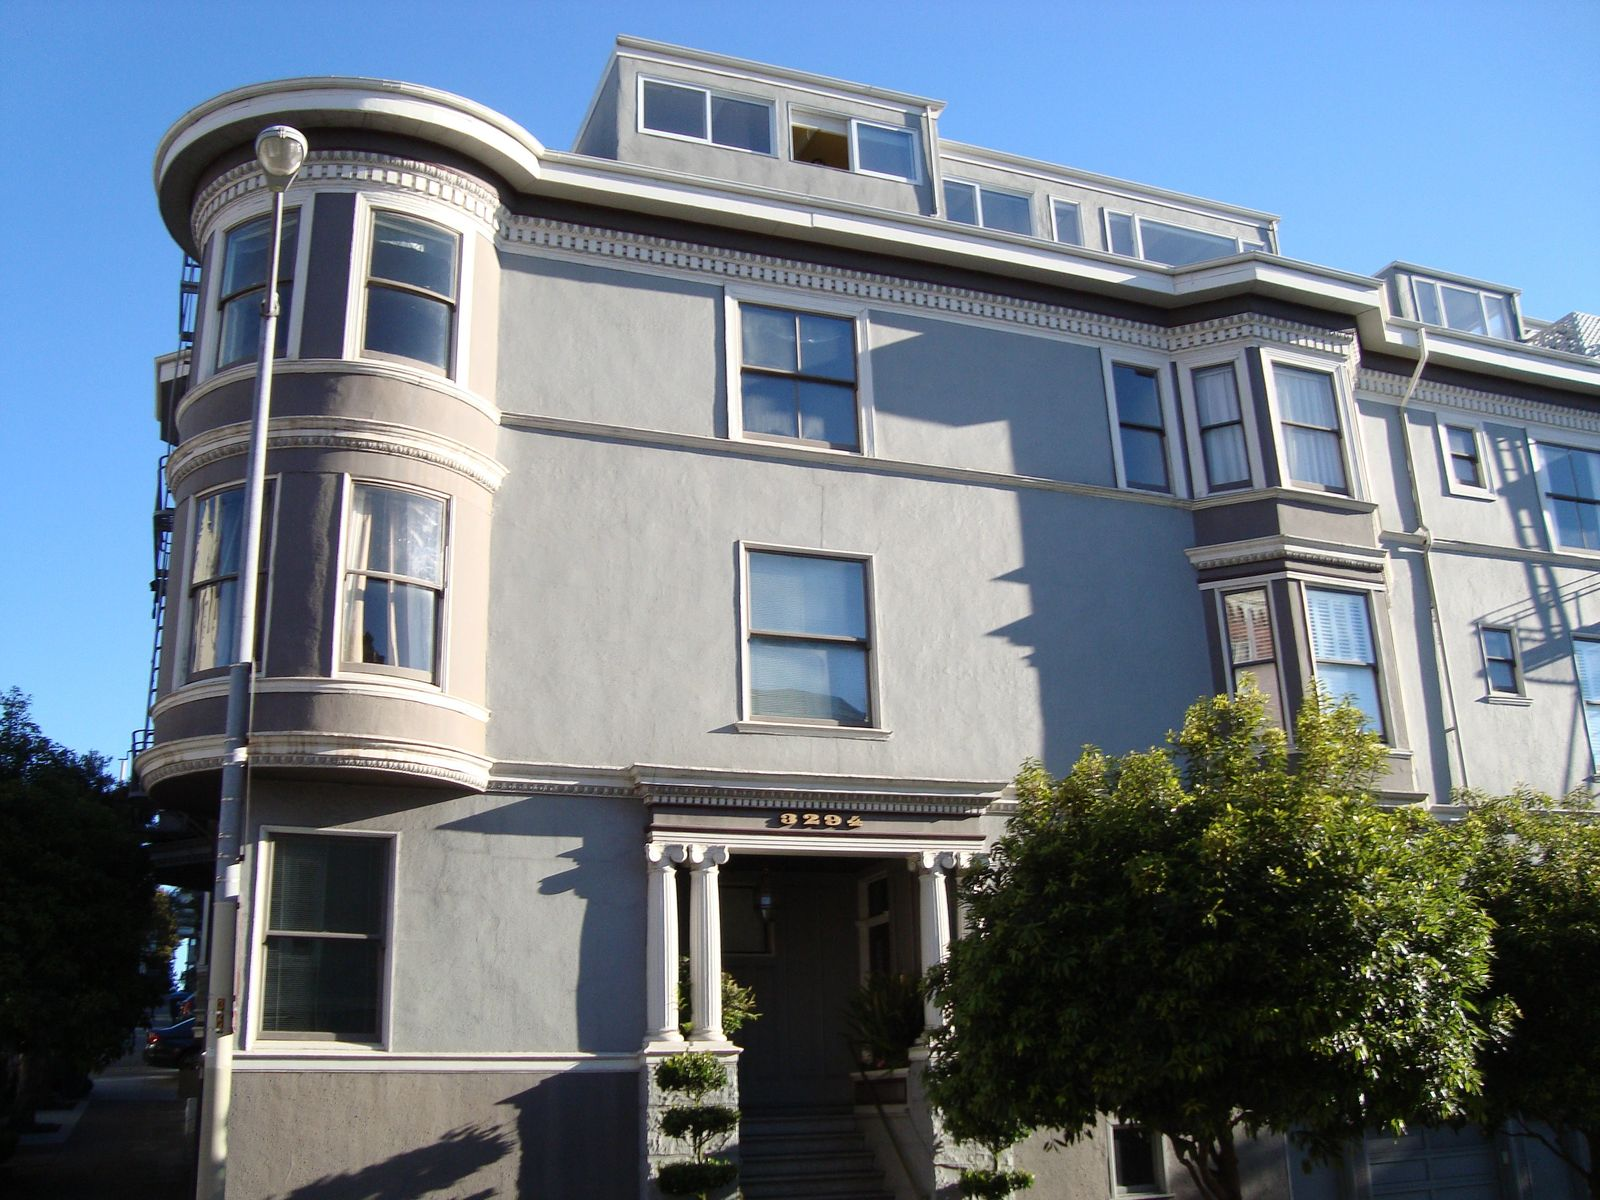 3294 Clay Street, Apartment 5, San Francisco CA Condominium - San Francisco Real Estate